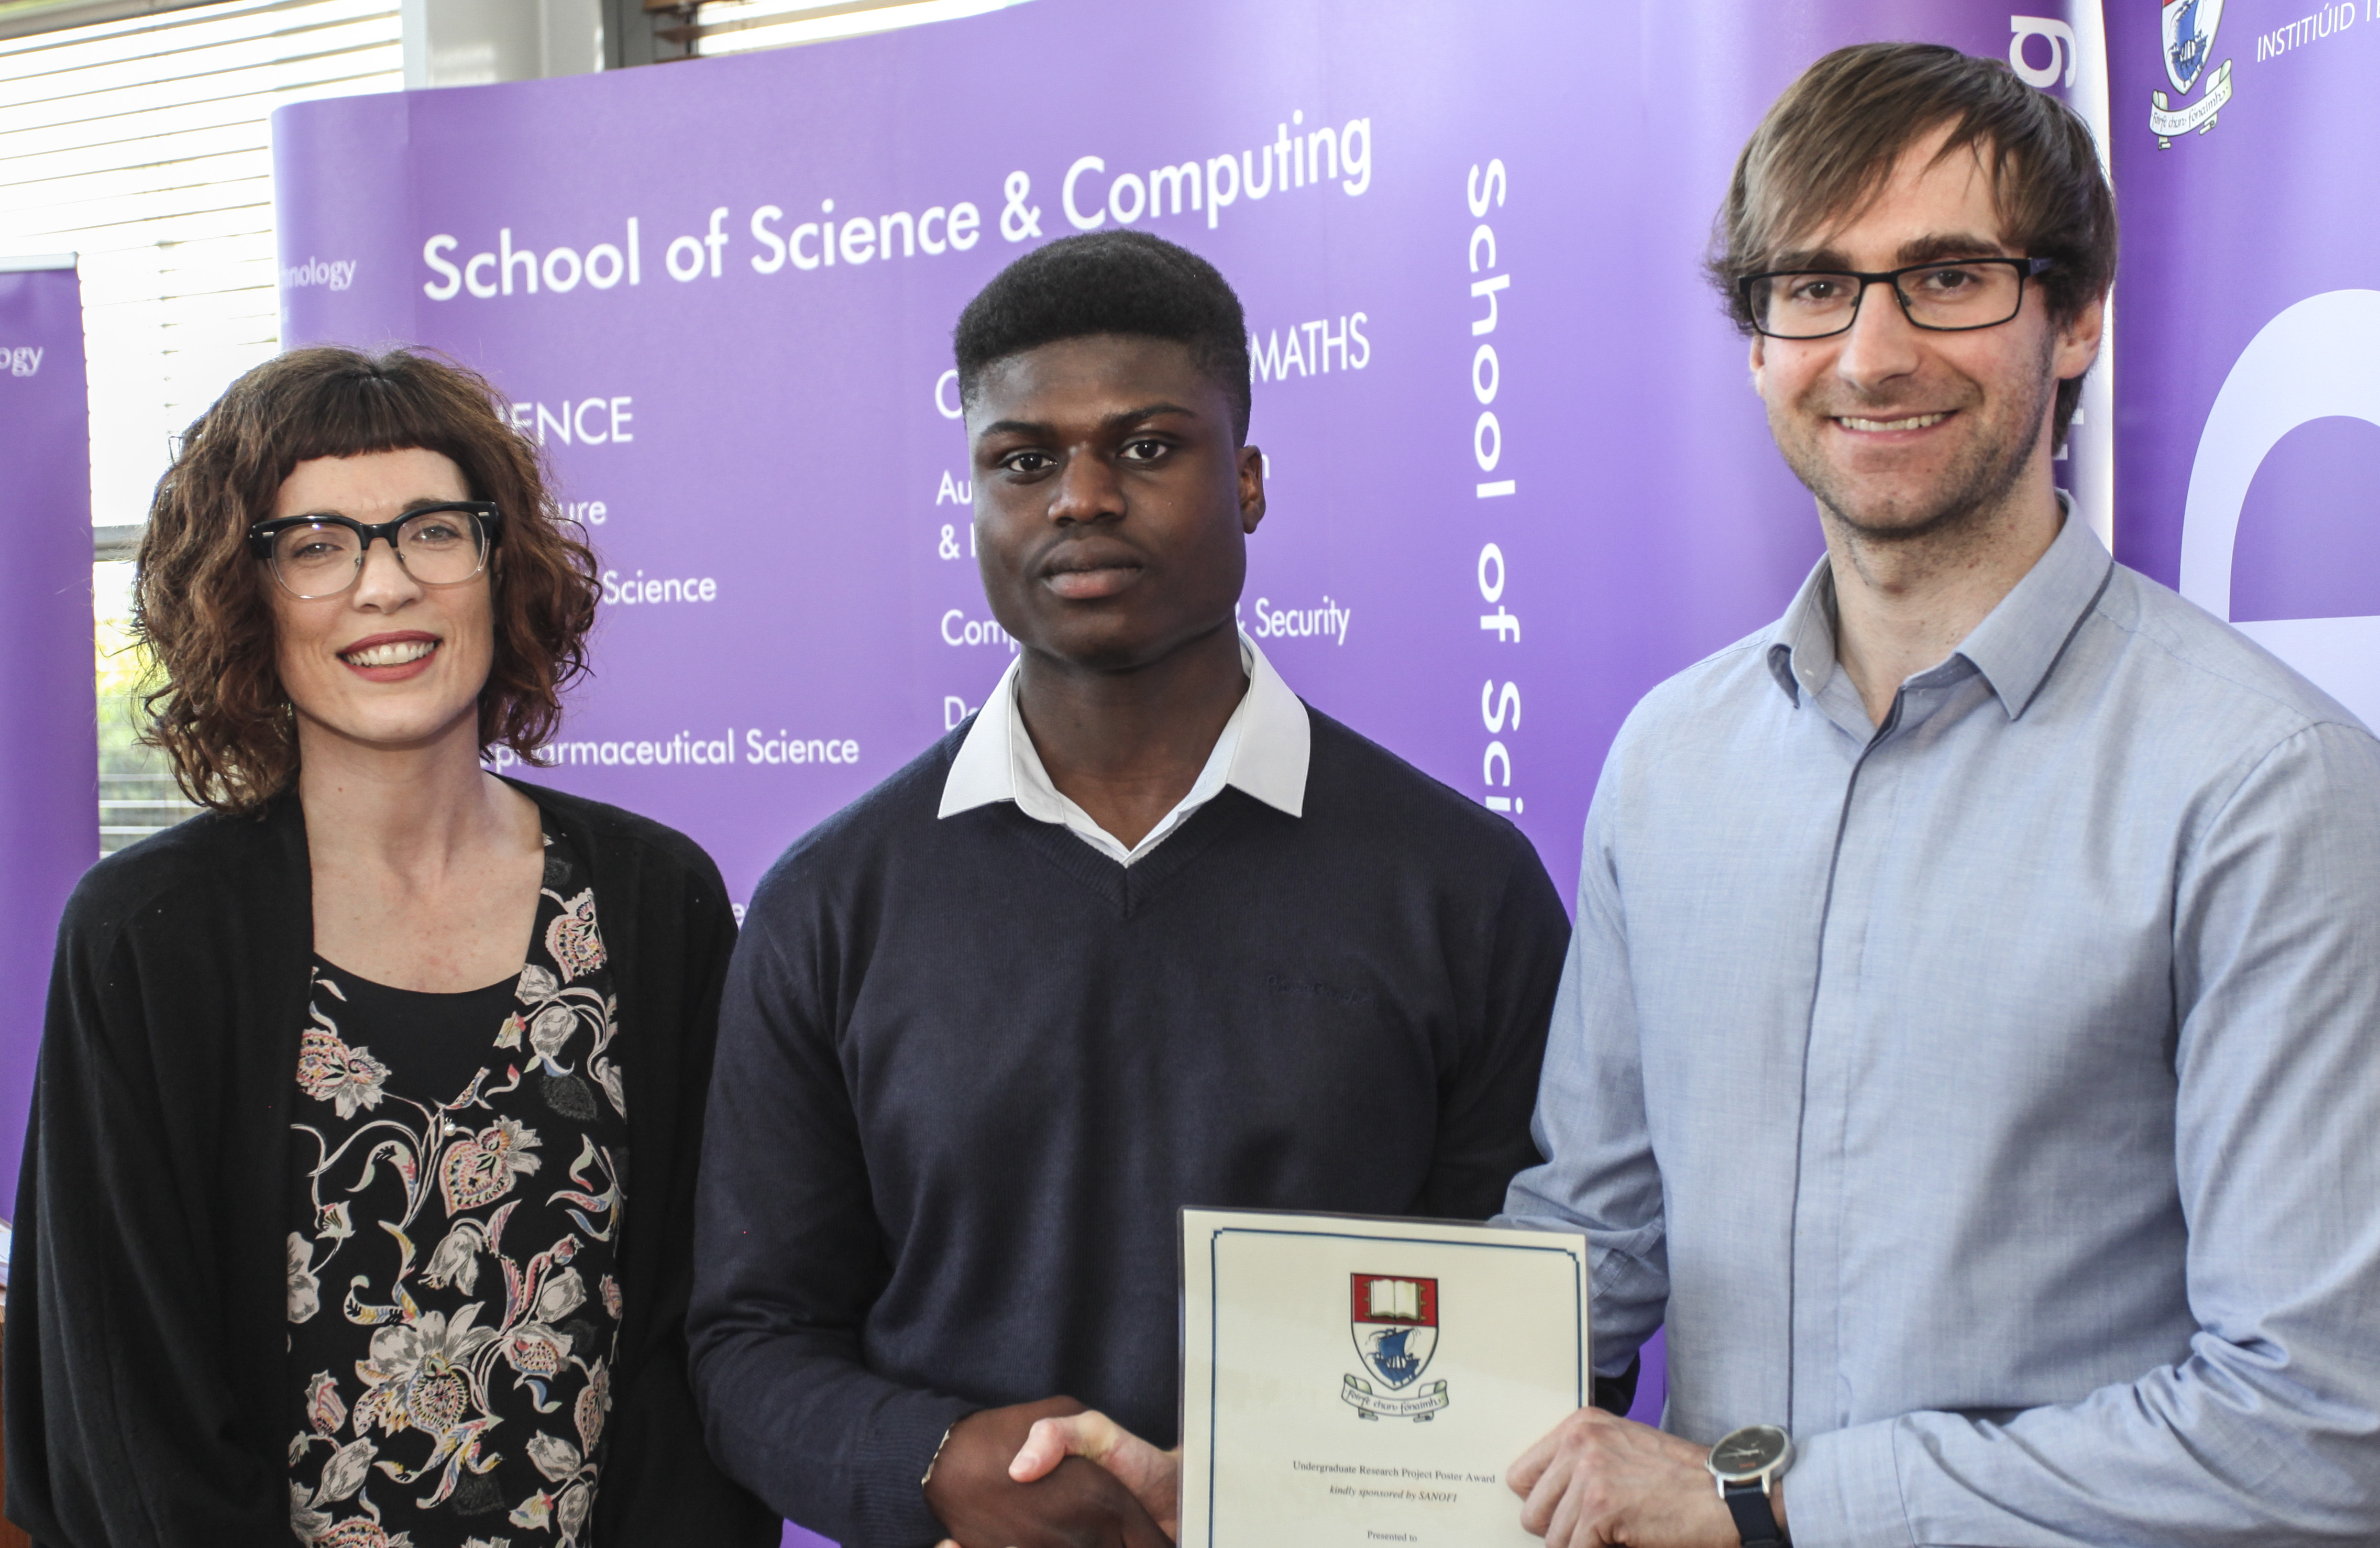 Pictured from left are: Dr Claire Lennon, WIT; Hilkiah Ako, a finalist in the BSc (Hons) in Pharmaceutical Science Final Year Research Project Poster Award sponsored by Sanofi and Brian Rellis from Sanofi presented the awards to the finalists and winners.